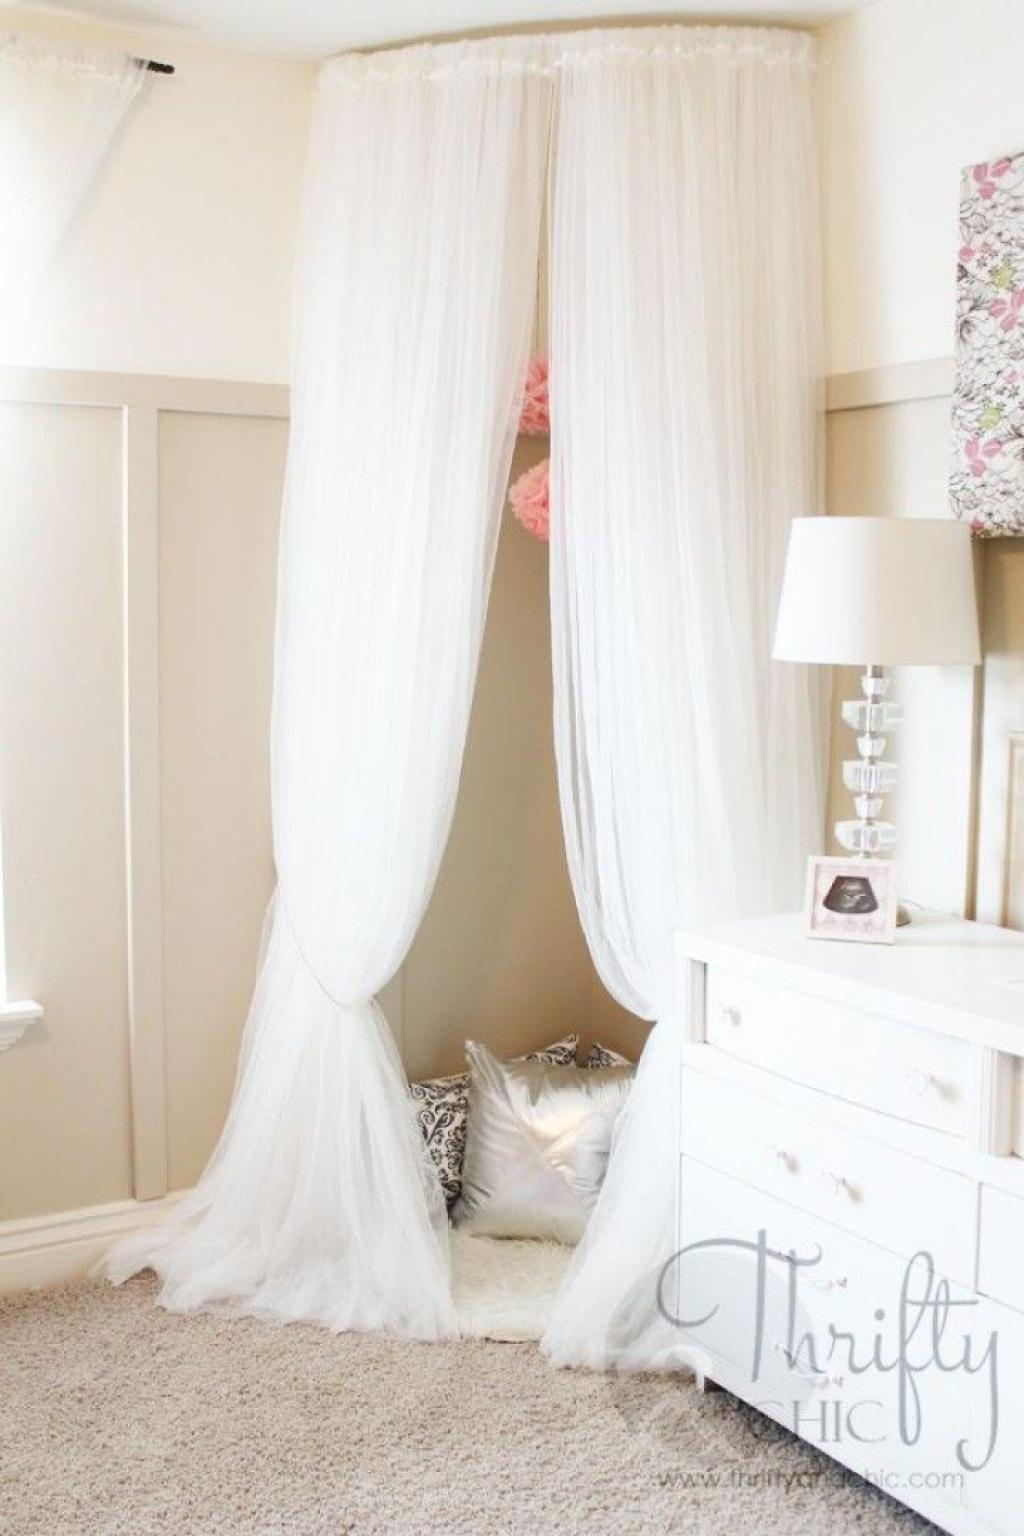 Creative Corner Reading Chair with White Curtain for Creative DIY Reading Corner Place